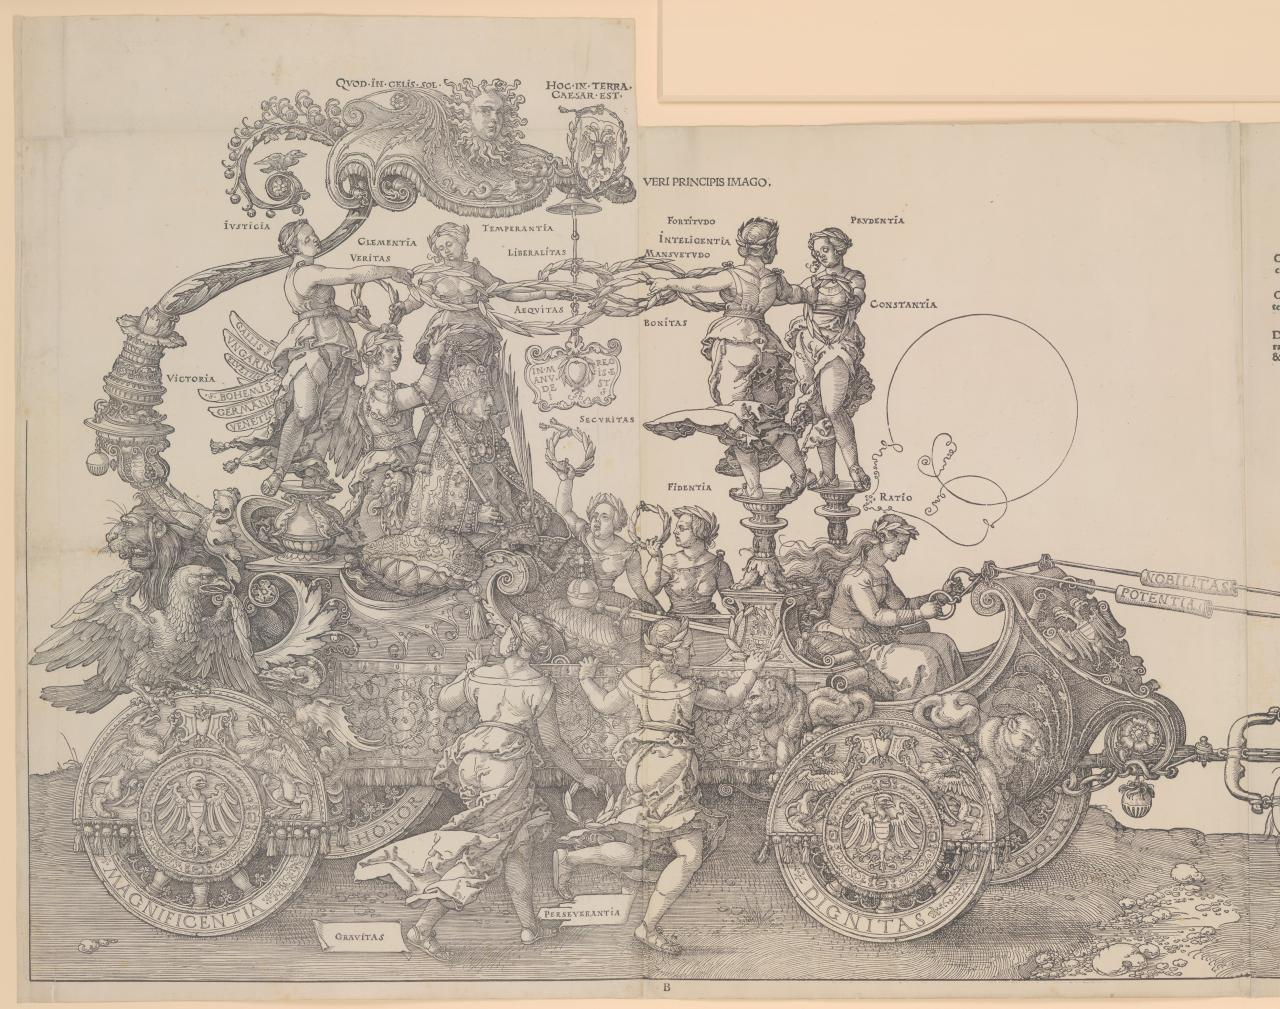 The Great Triumphal Chariot of Emperor Maximilian I